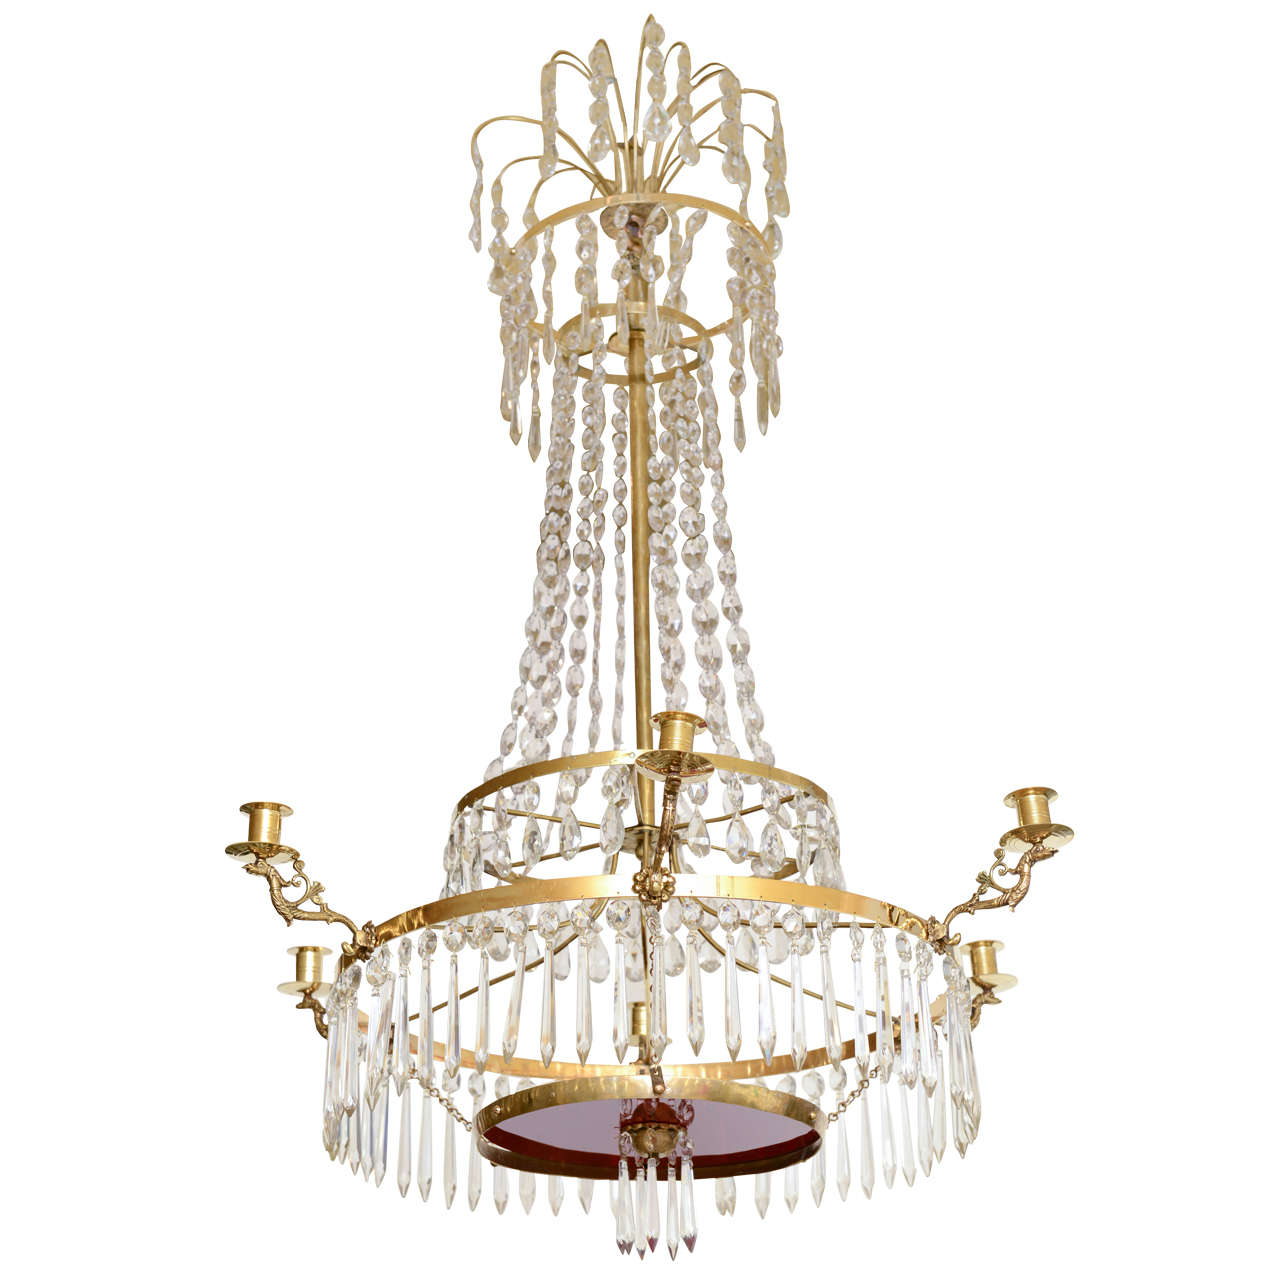 Antique swedish crystal chandelier mid 19th century for sale at 1stdibs arubaitofo Image collections